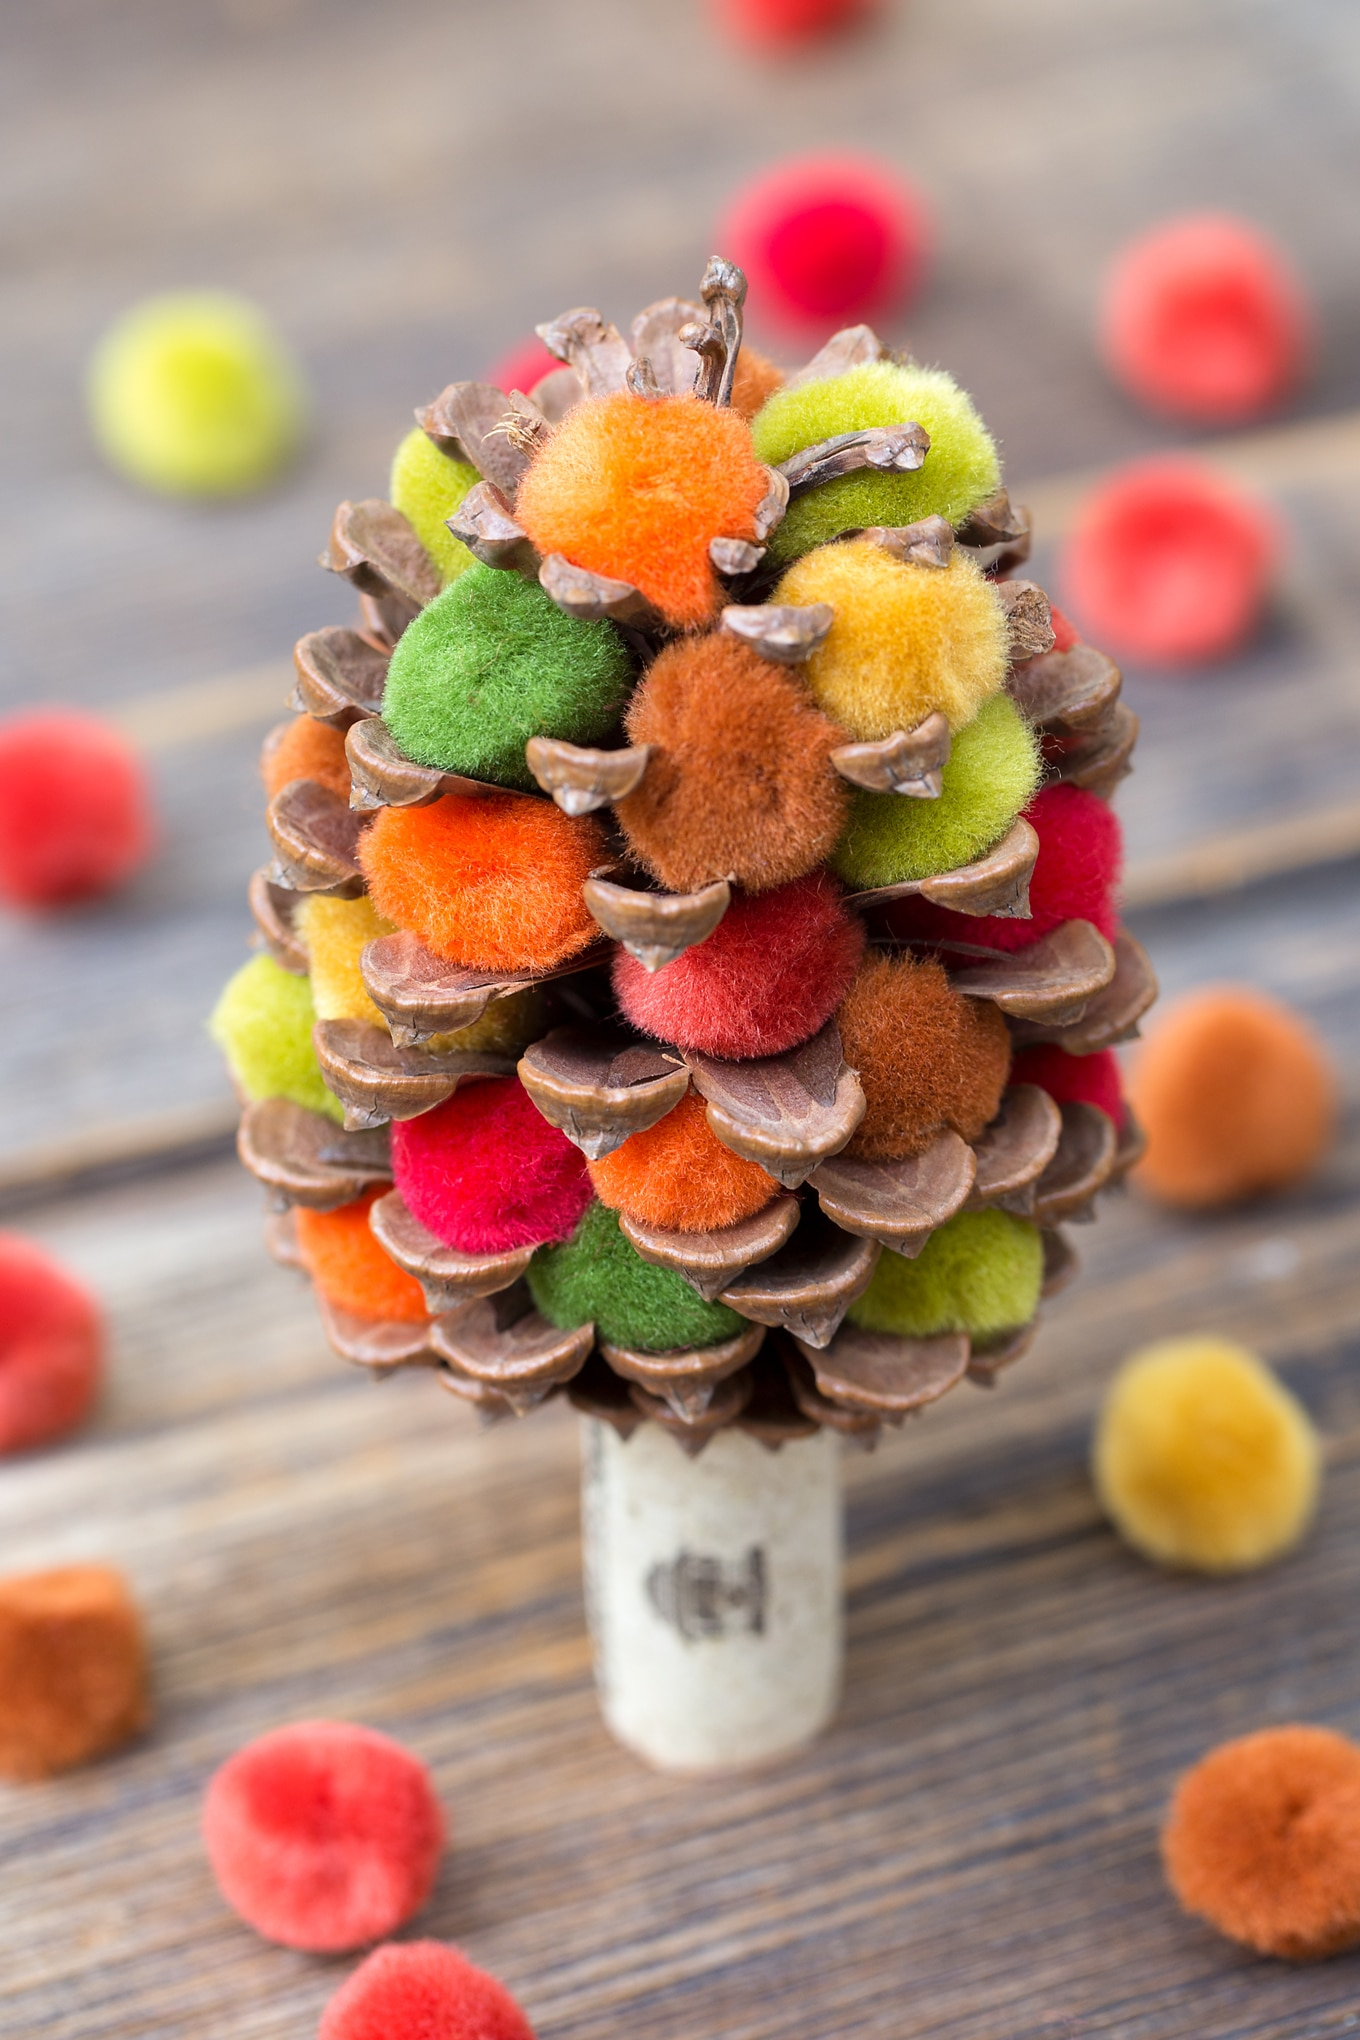 Learn how to make a colorful fall pine cone tree with pine cones, corks, and pom poms. This easy fall nature craft is perfect for kids of all ages!